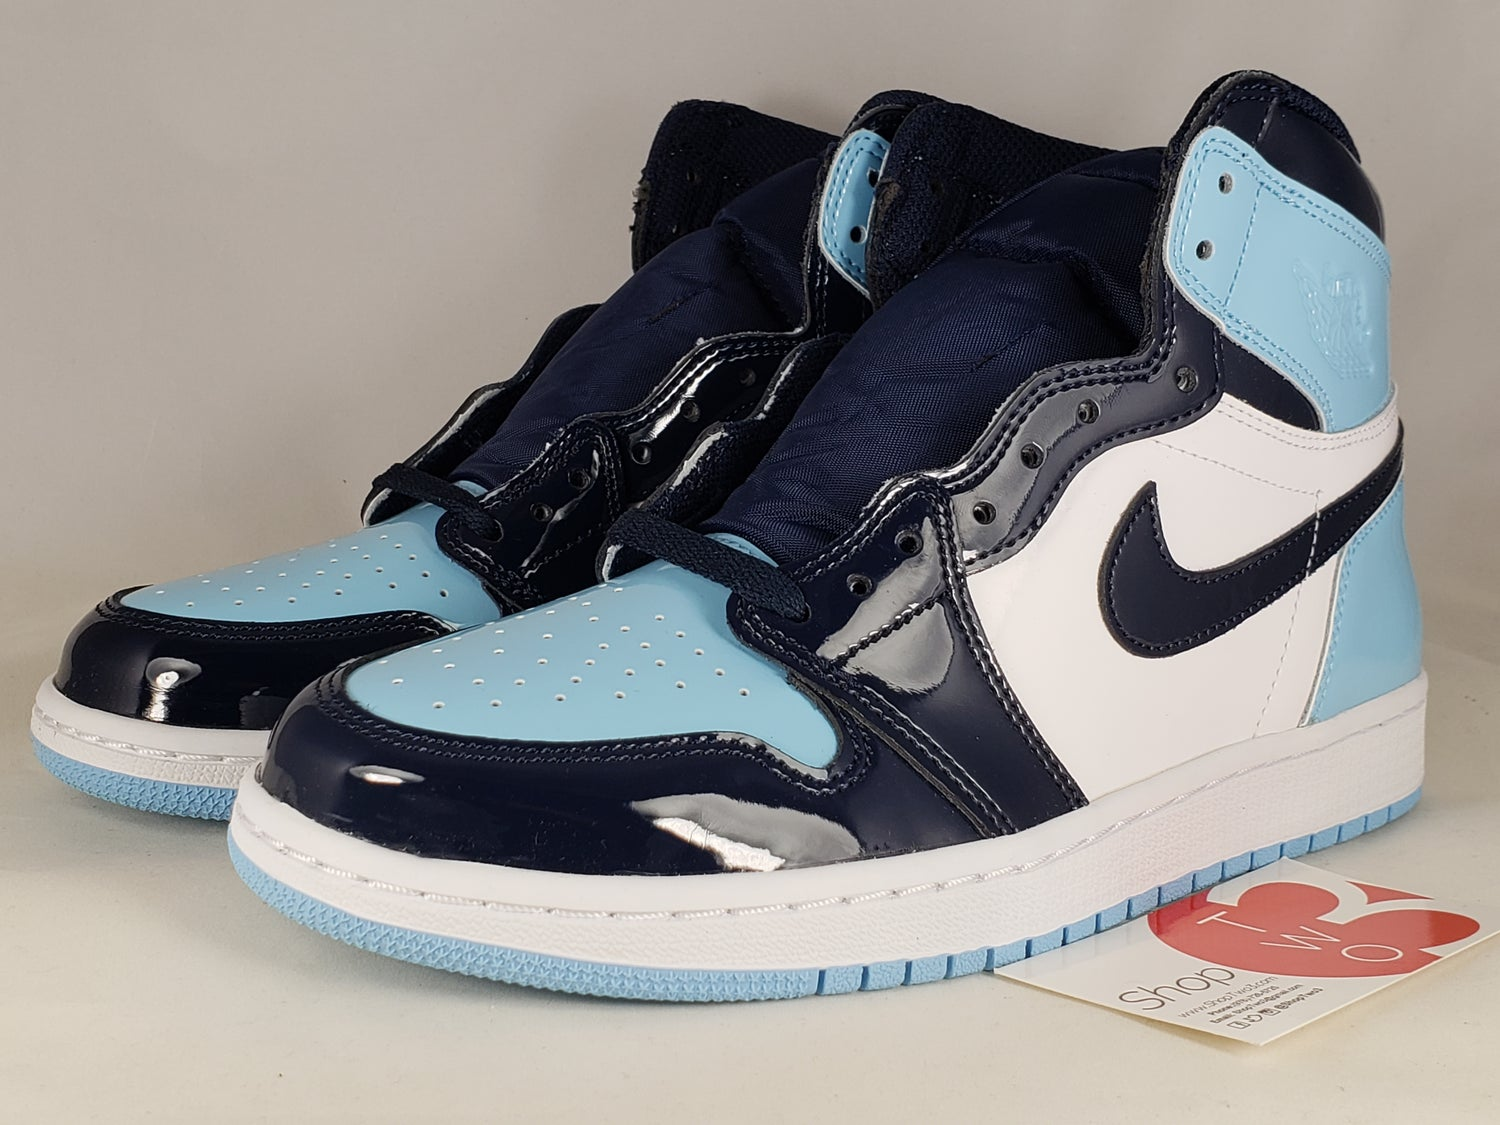 Image of Air Jordan 1 Retro High Blue Chill